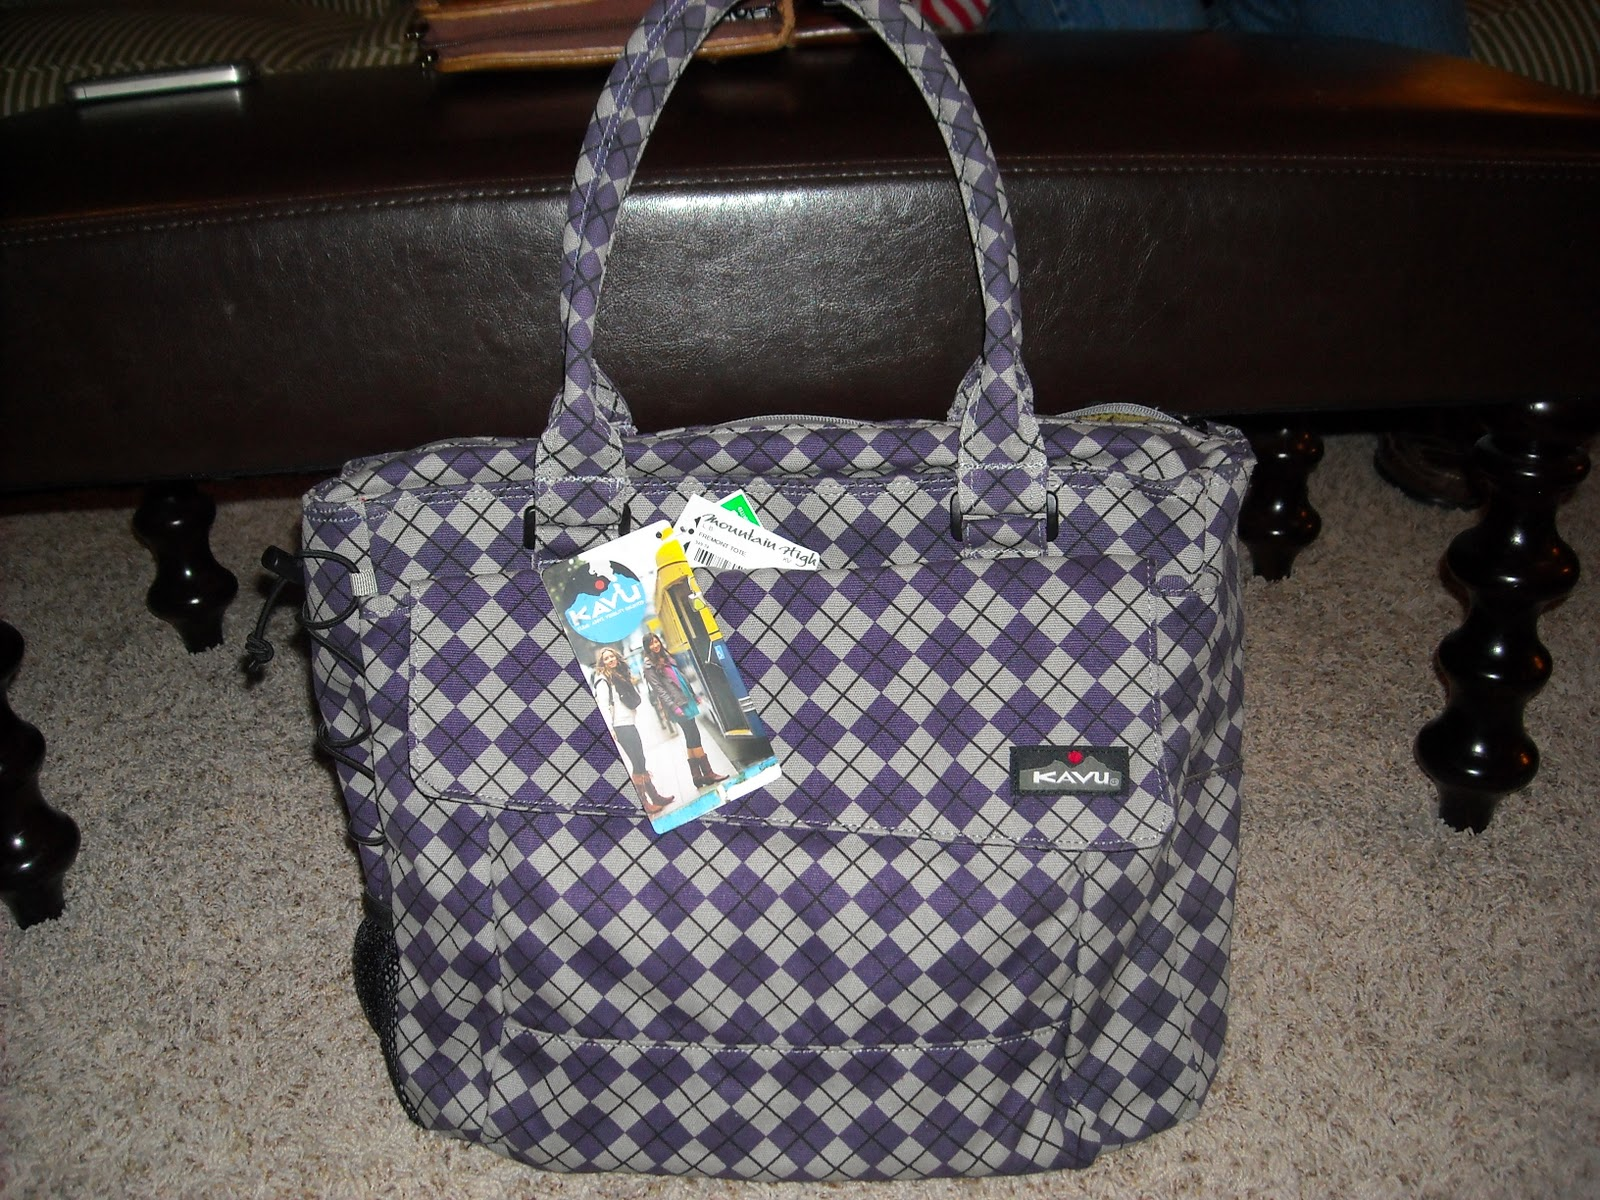 More Than A Few Diapers I Began The Search Went Through Others Not Worth Mentioning Then Came Across This Jewel Kavu Fremont Tote